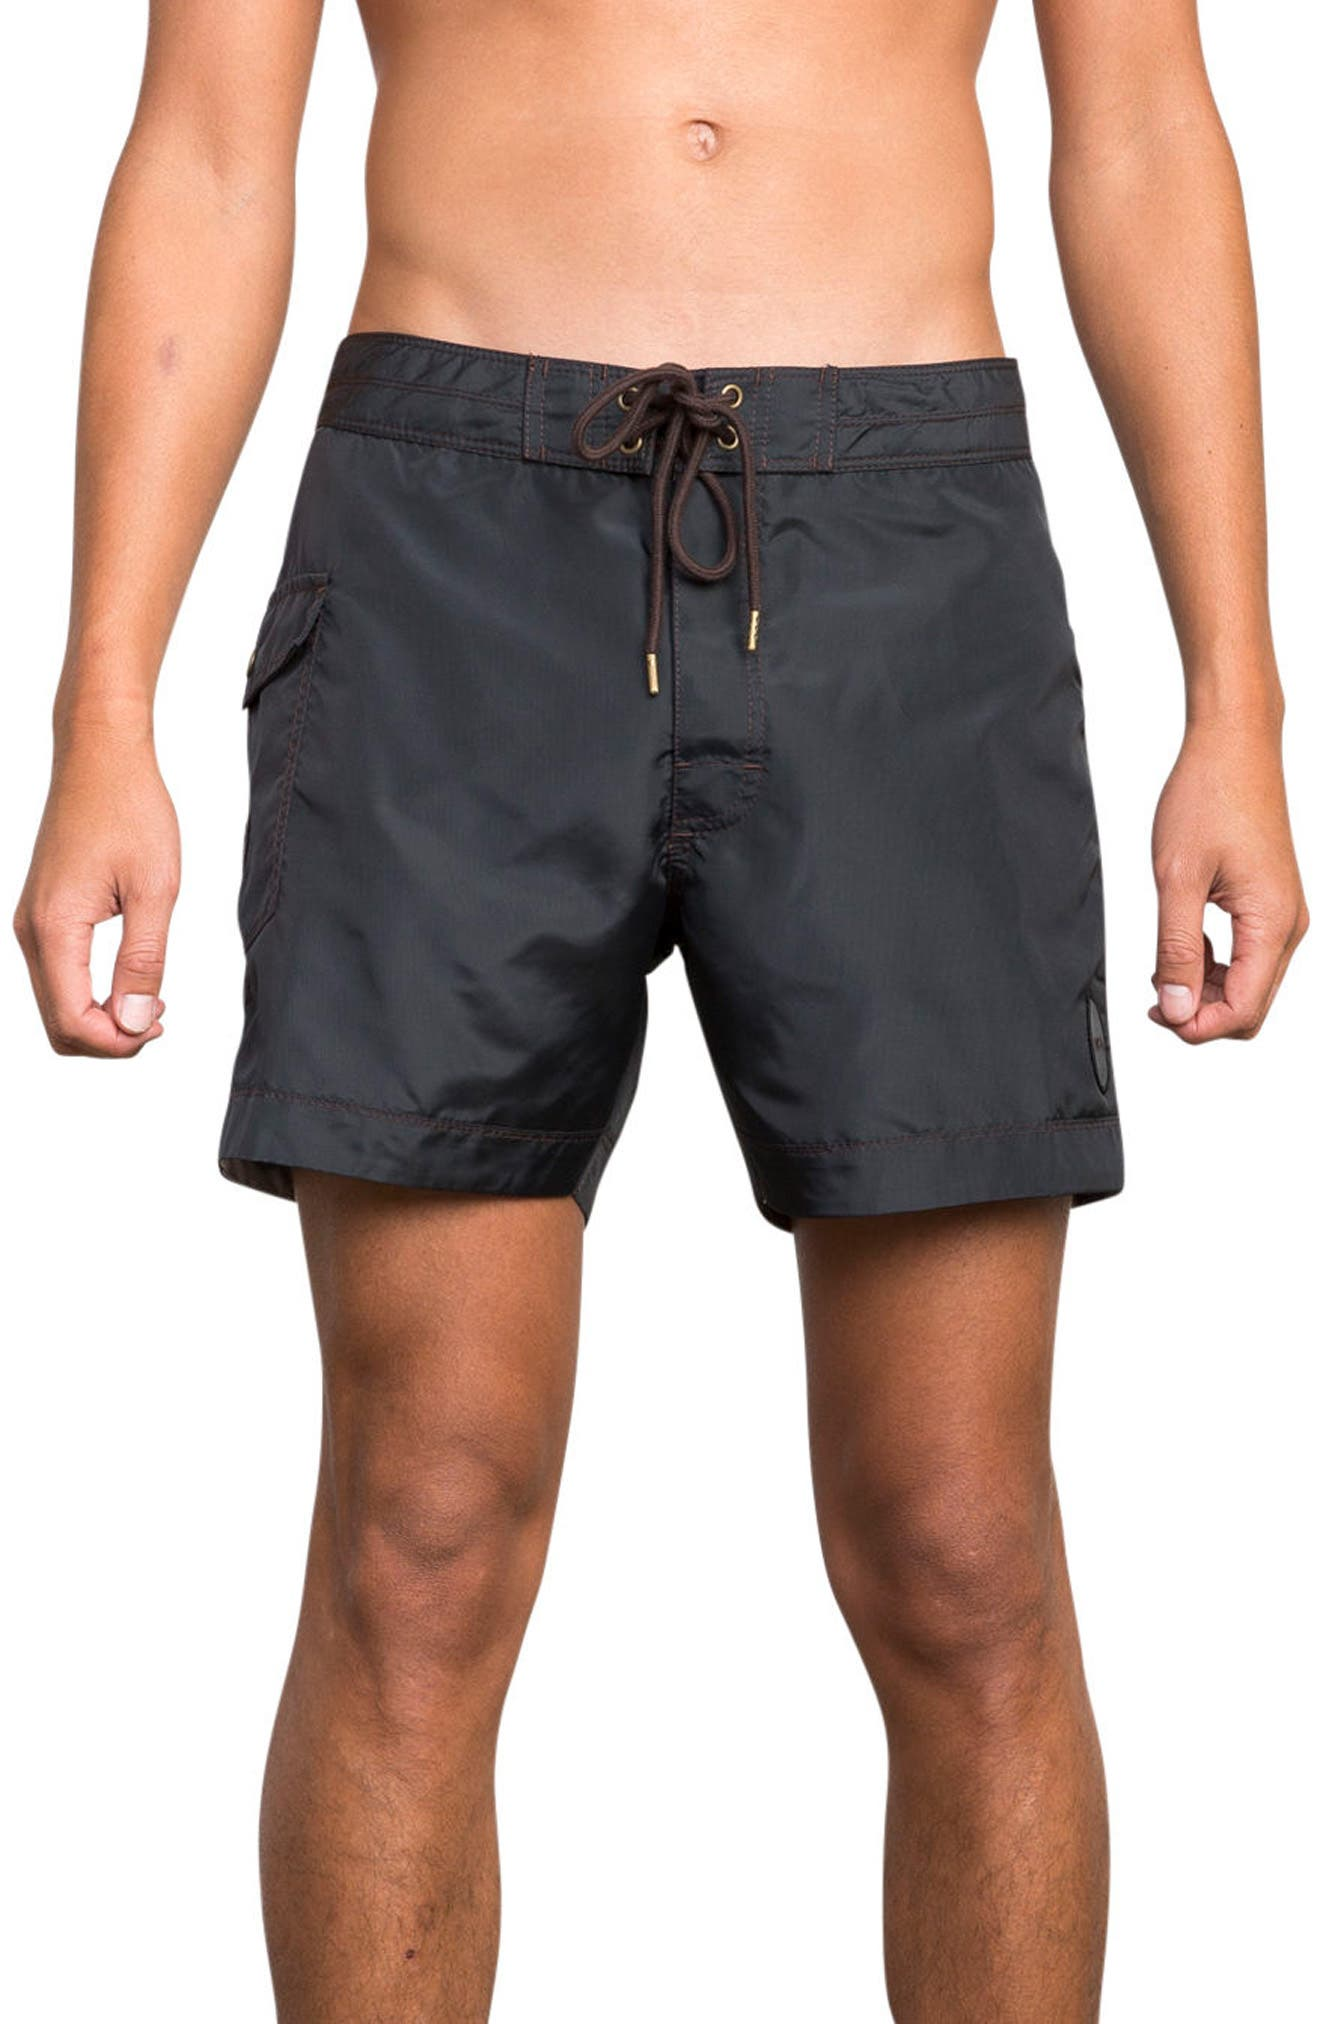 Knost Swim Trunks,                             Main thumbnail 1, color,                             008